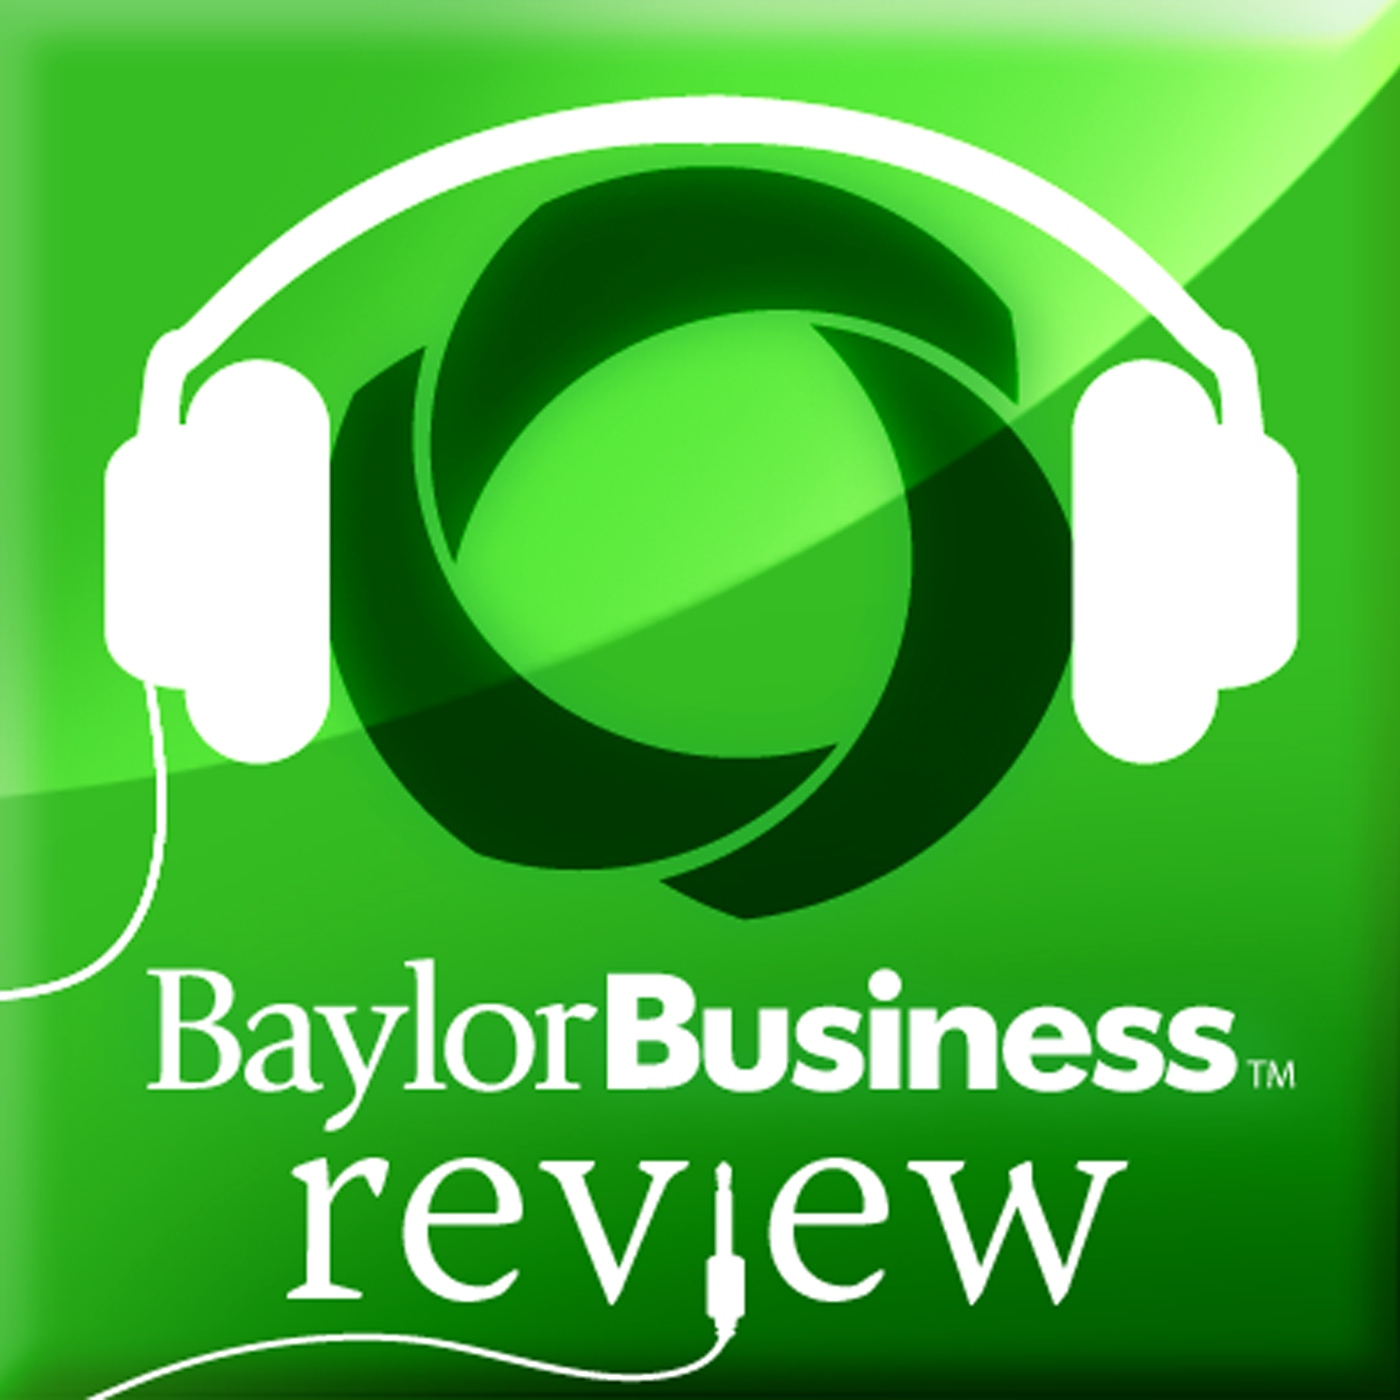 Baylor University Business Review